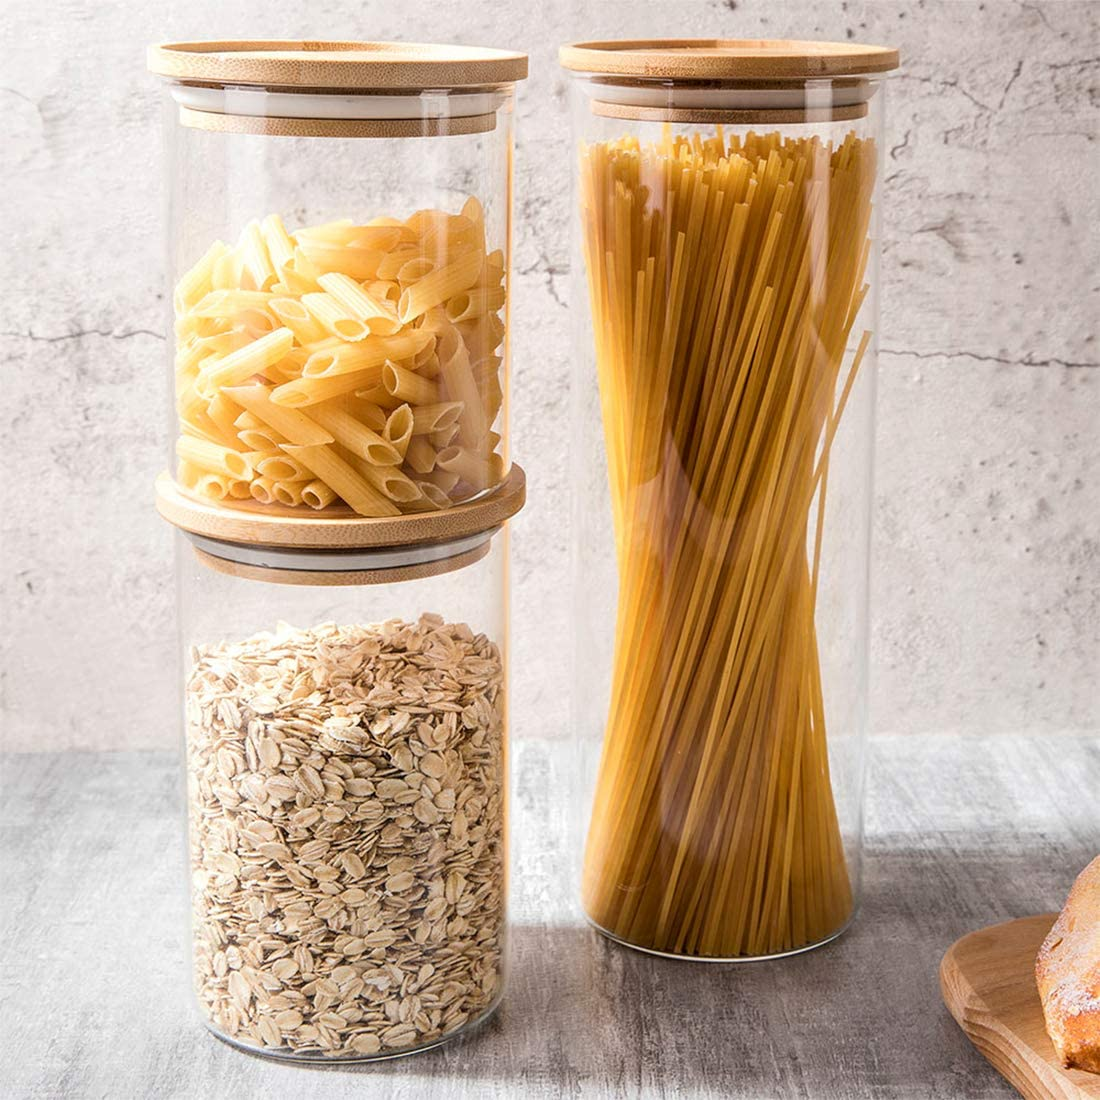 Glass Food Jars Set of 3 Stackable Glass Container With Sealed Bamboo Lid for Kitchen and Pantry Organization Ideal for Flour, Cookie, Coffee, Candy, Snack and More(18.6oz 28.7oz 54oz)